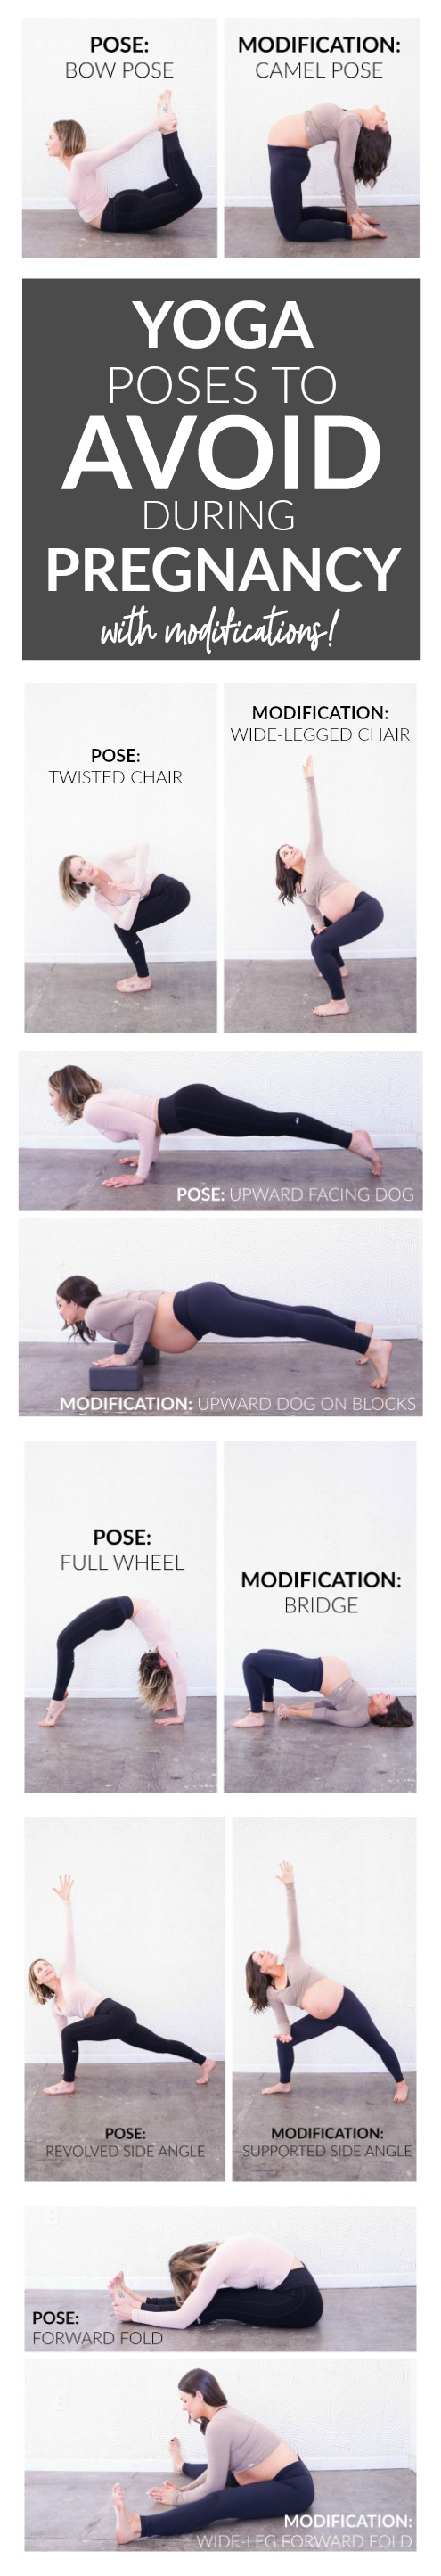 Yoga Headstand While Pregnant